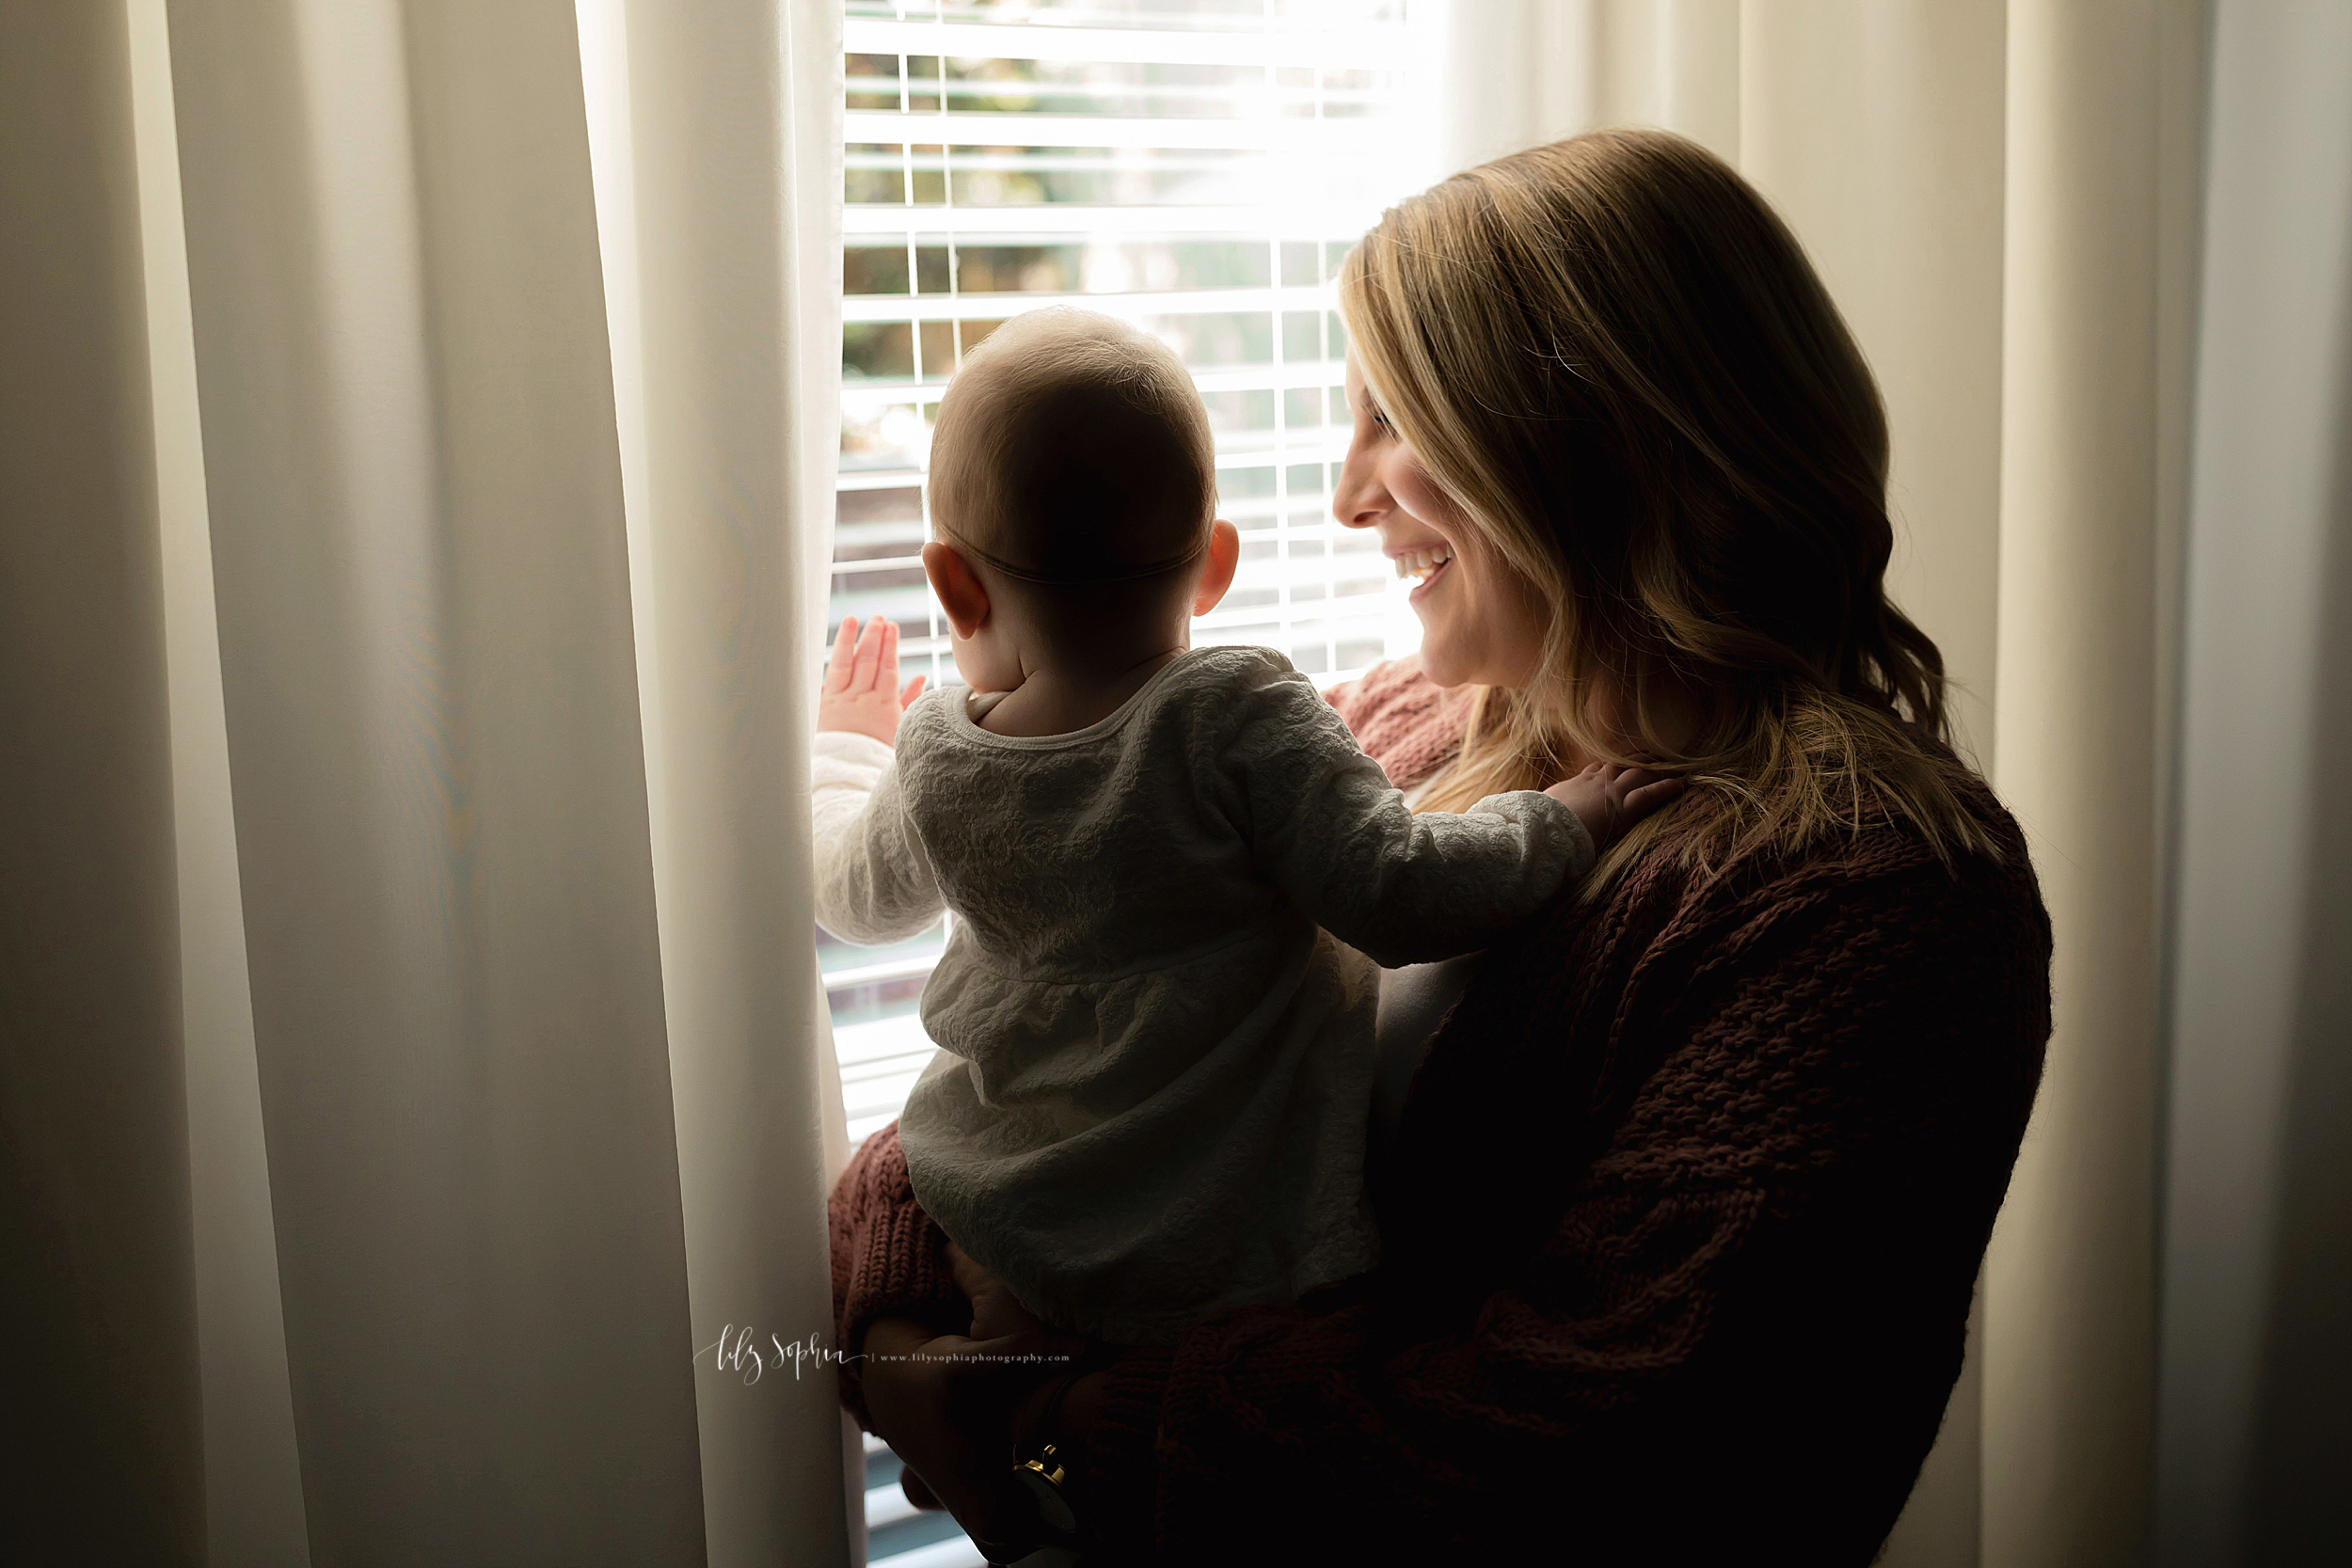 atlanta-midtown-brookhaven-ashford-dunwoody-virginia-highlands-roswell-decatur-lily-sophia-photography-in-home-six-month-milestone-family-lifestyle-session-sandy-springs_0658.jpg